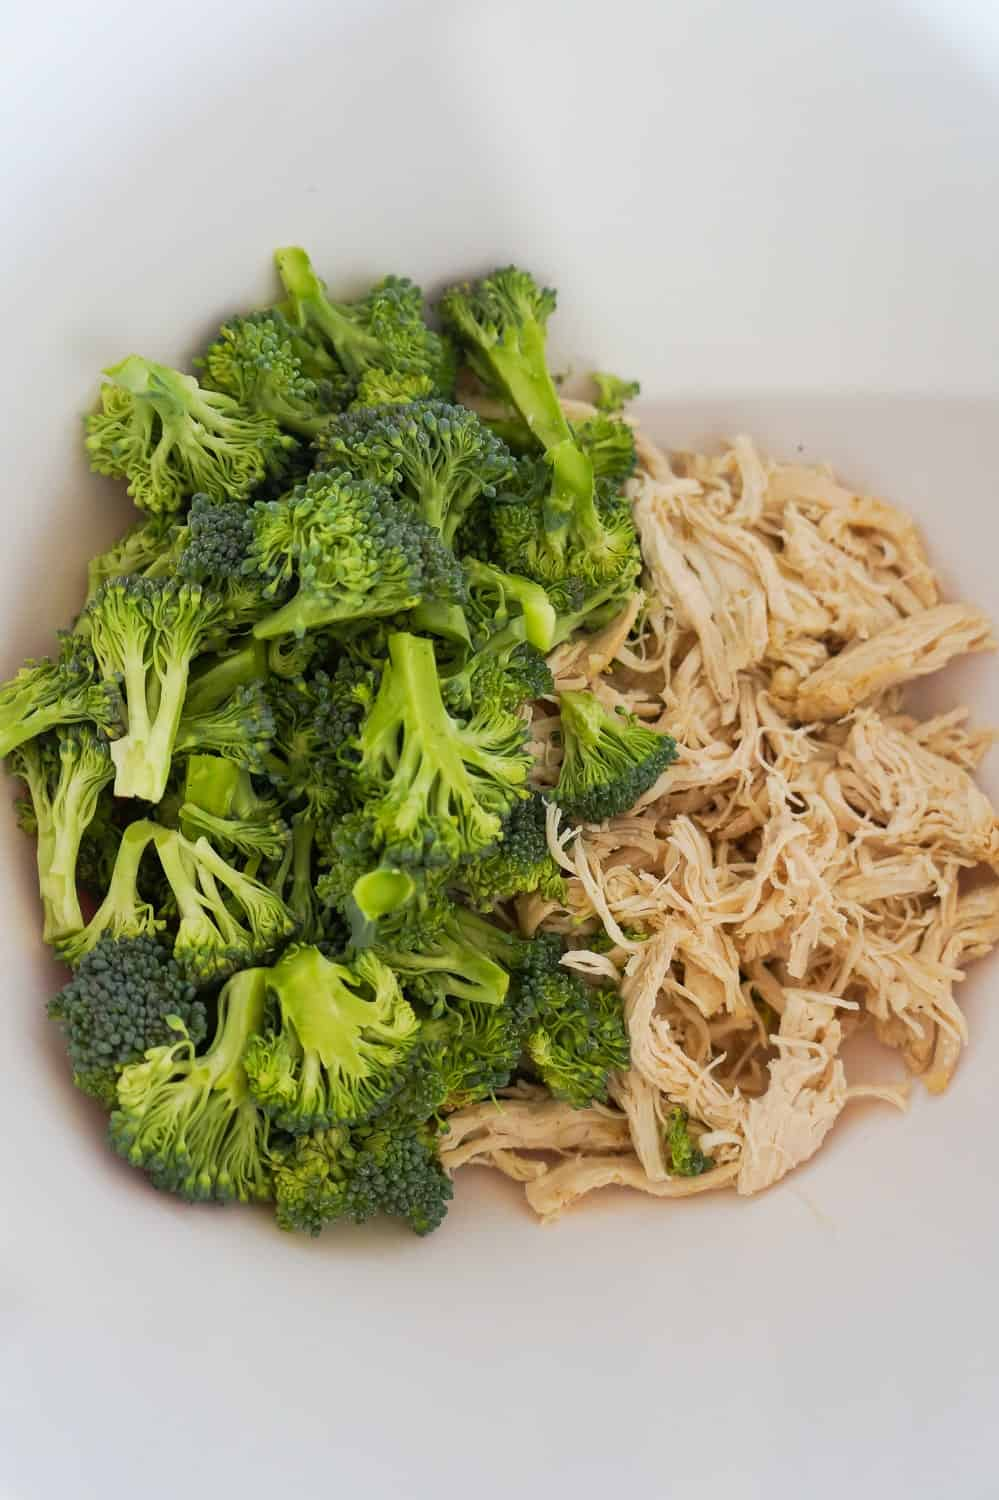 broccoli florets and shredded chicken in a mixing bowl